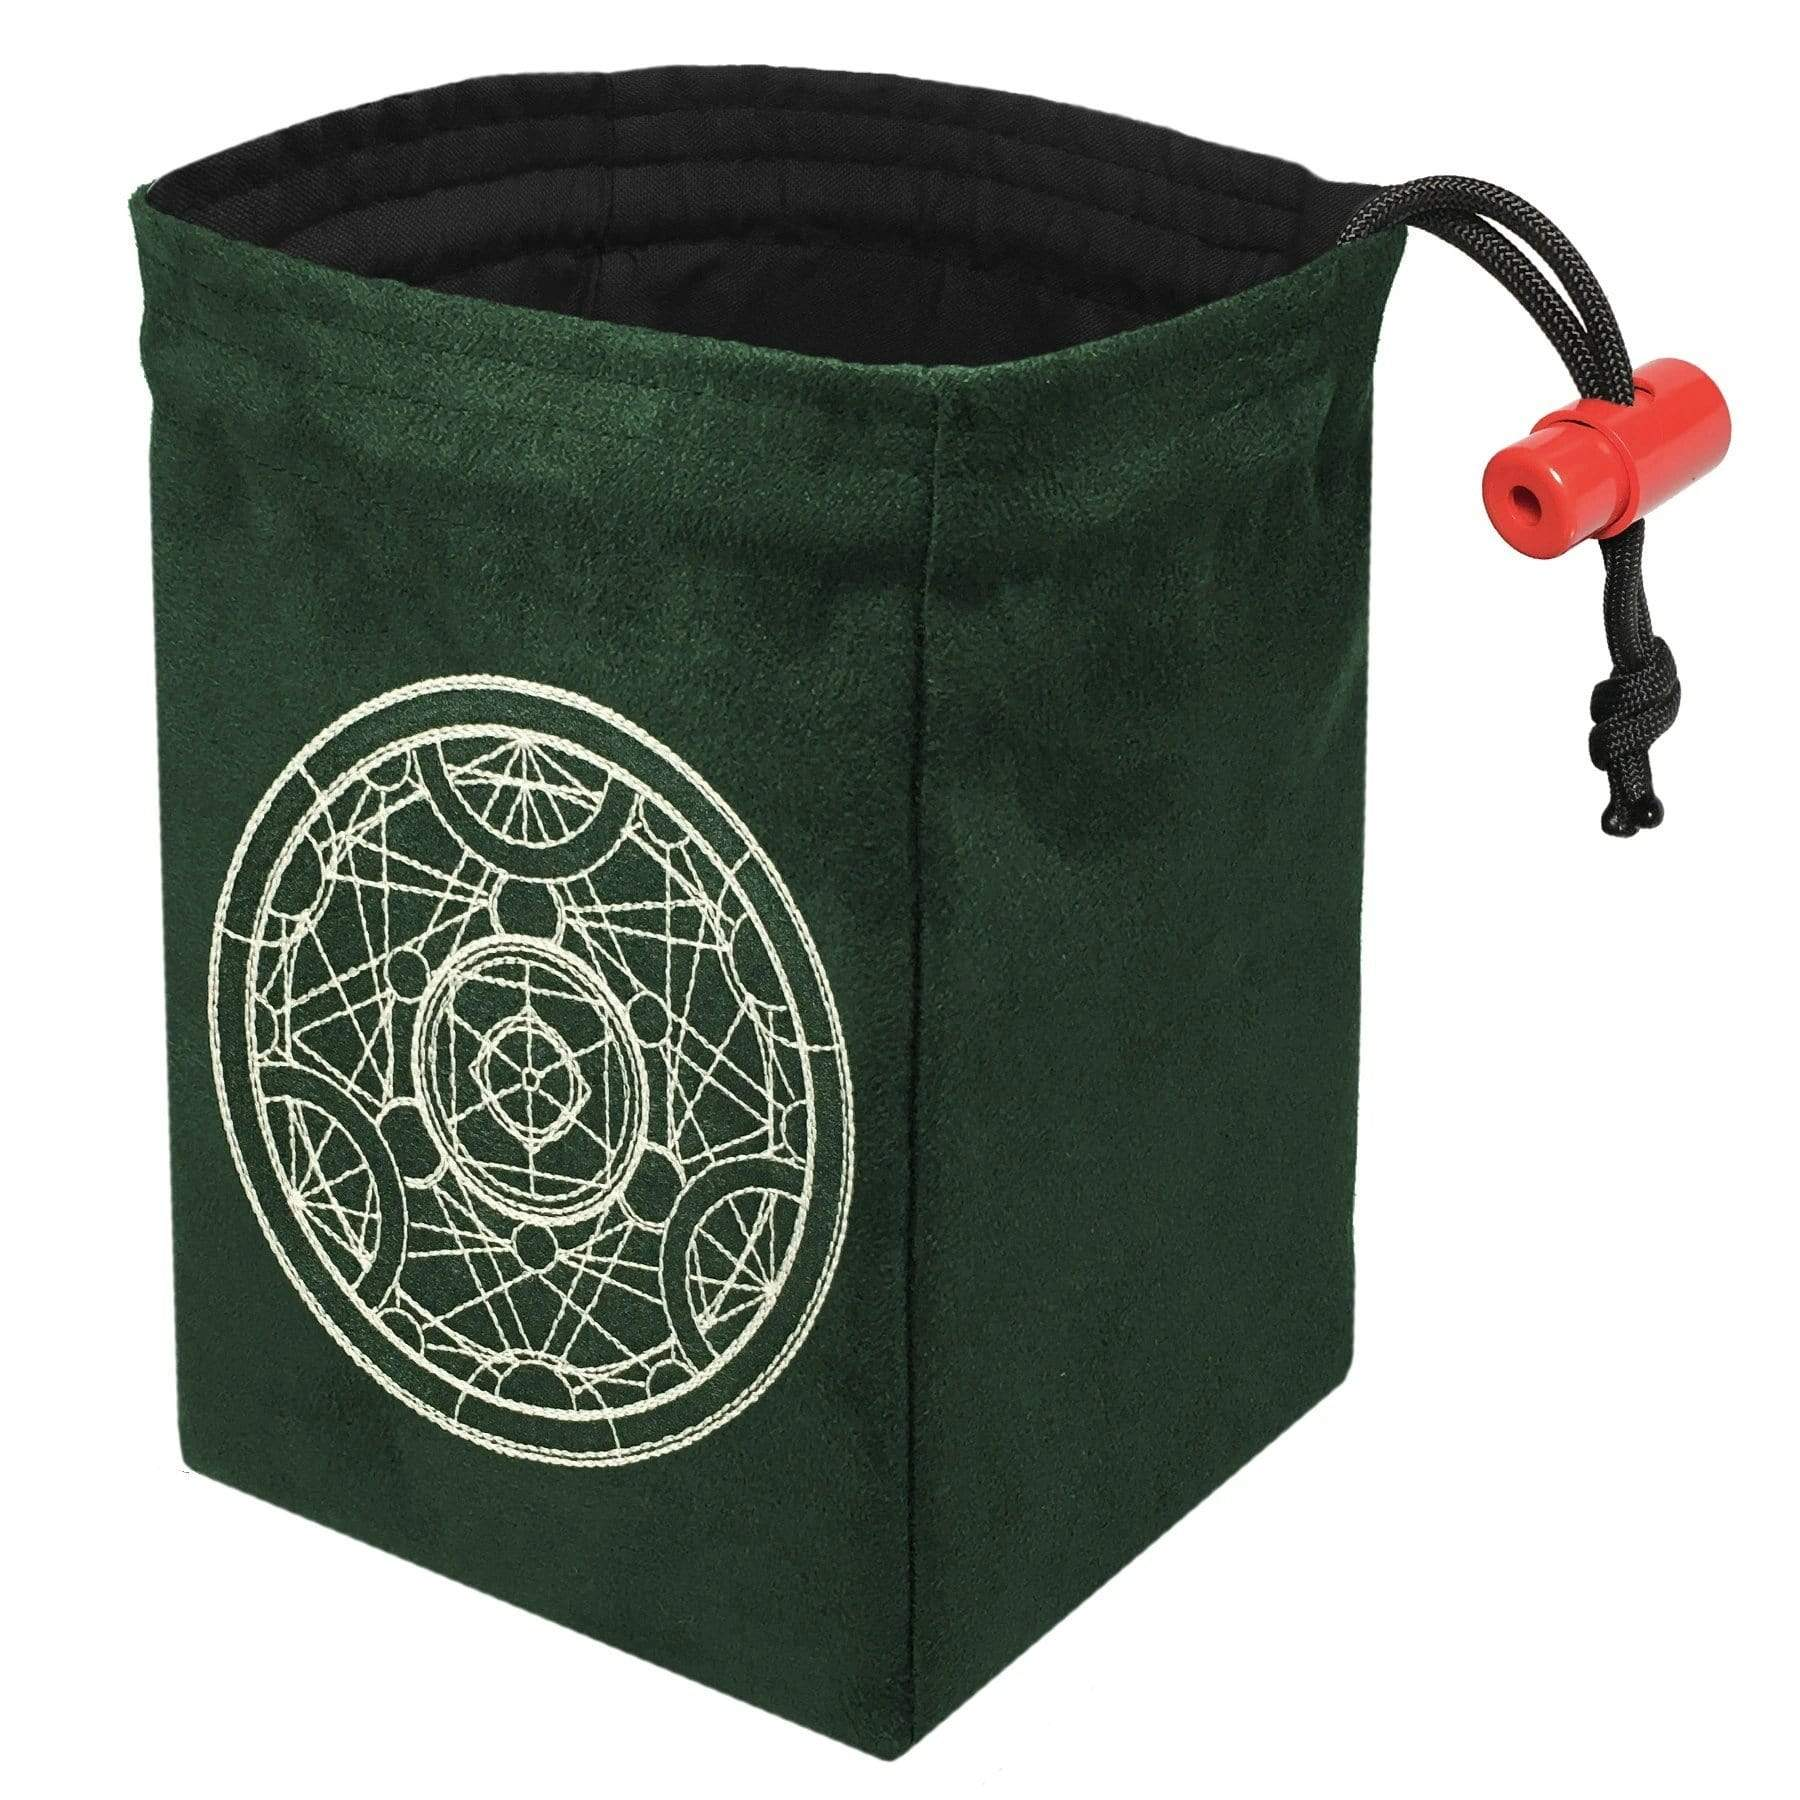 Dice Bag: Glow in the Dark-Alchemy Medallion Red King Company Clothing/Accessories